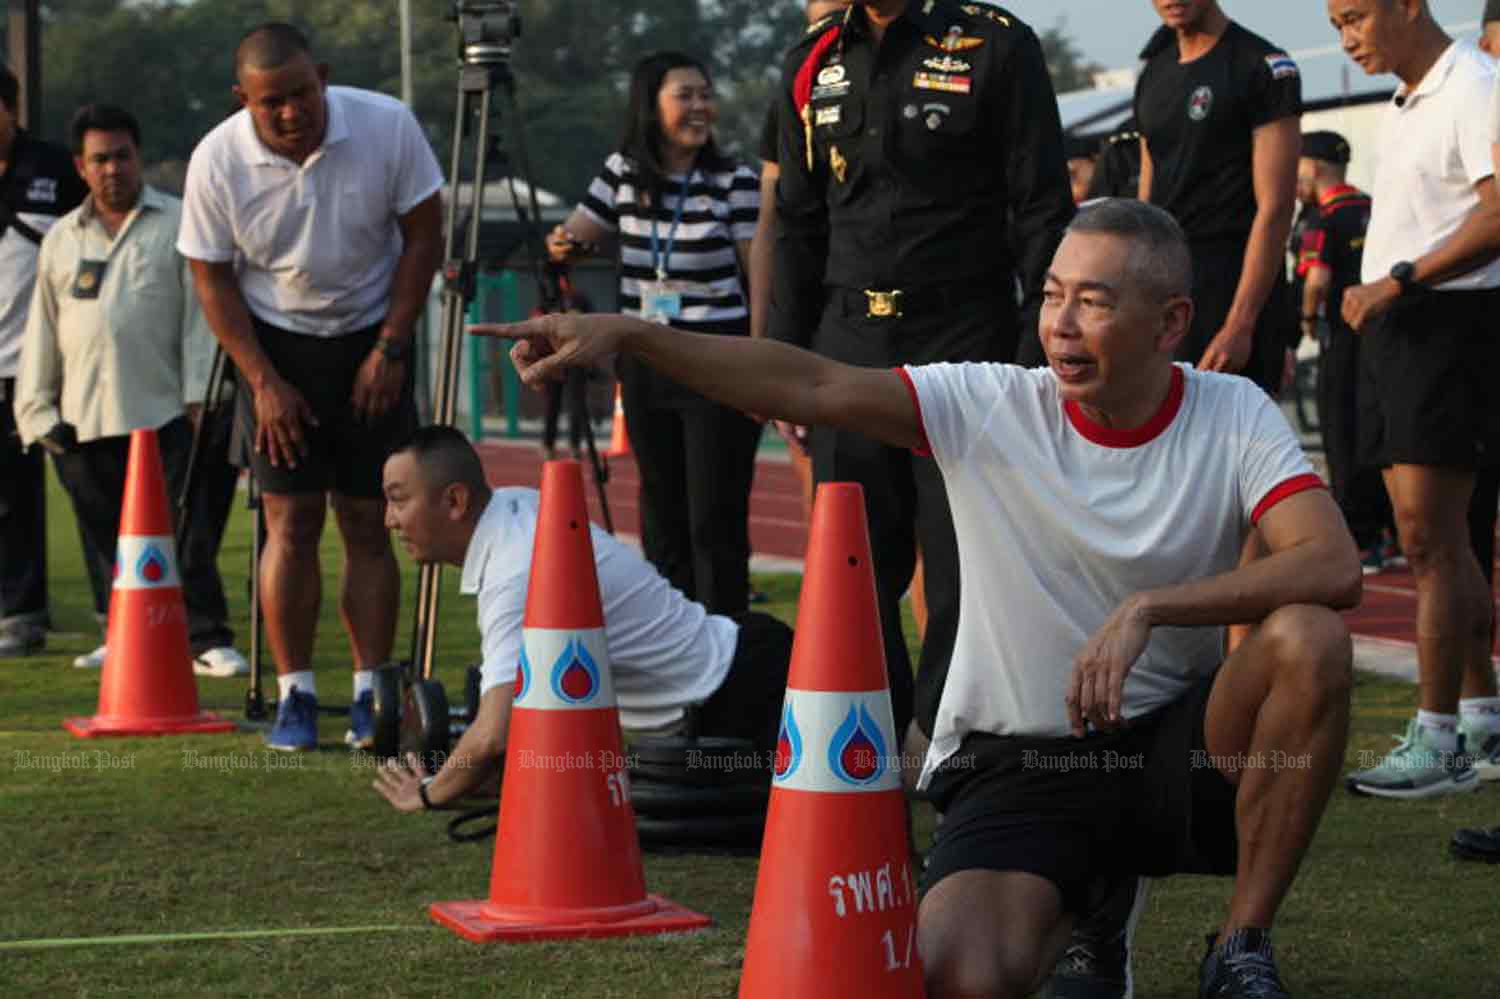 Army chief Gen Apirat Kongsompong makes a point during a fitness test at the Command and General Staff College in Bangkok on Friday. (Photo by Apichart Jinakul)